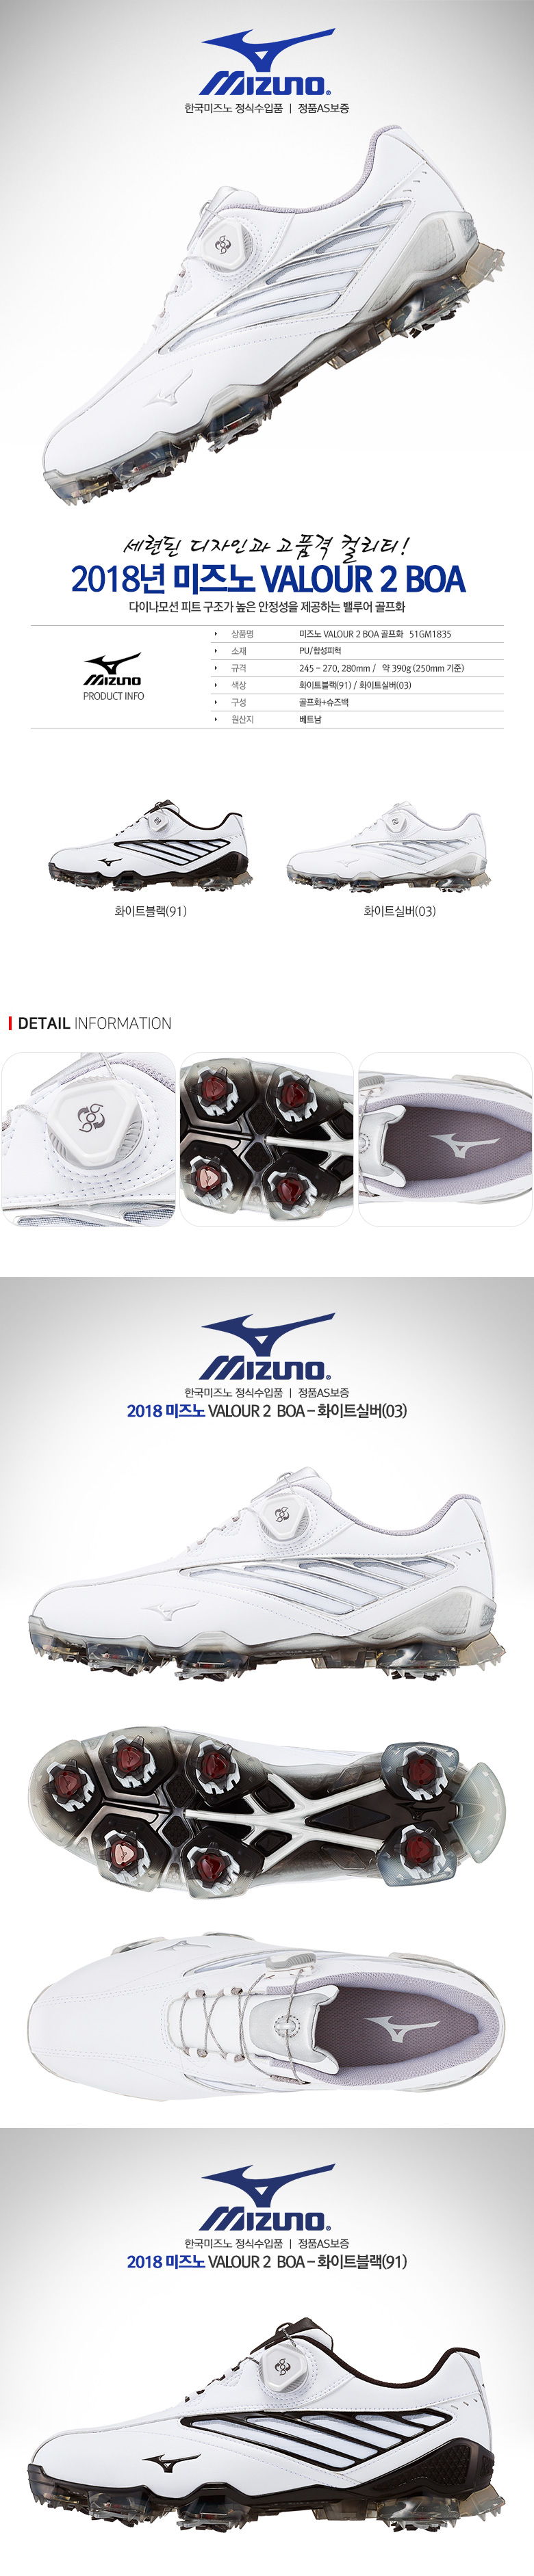 mizuno_valour_002_shoes.jpg